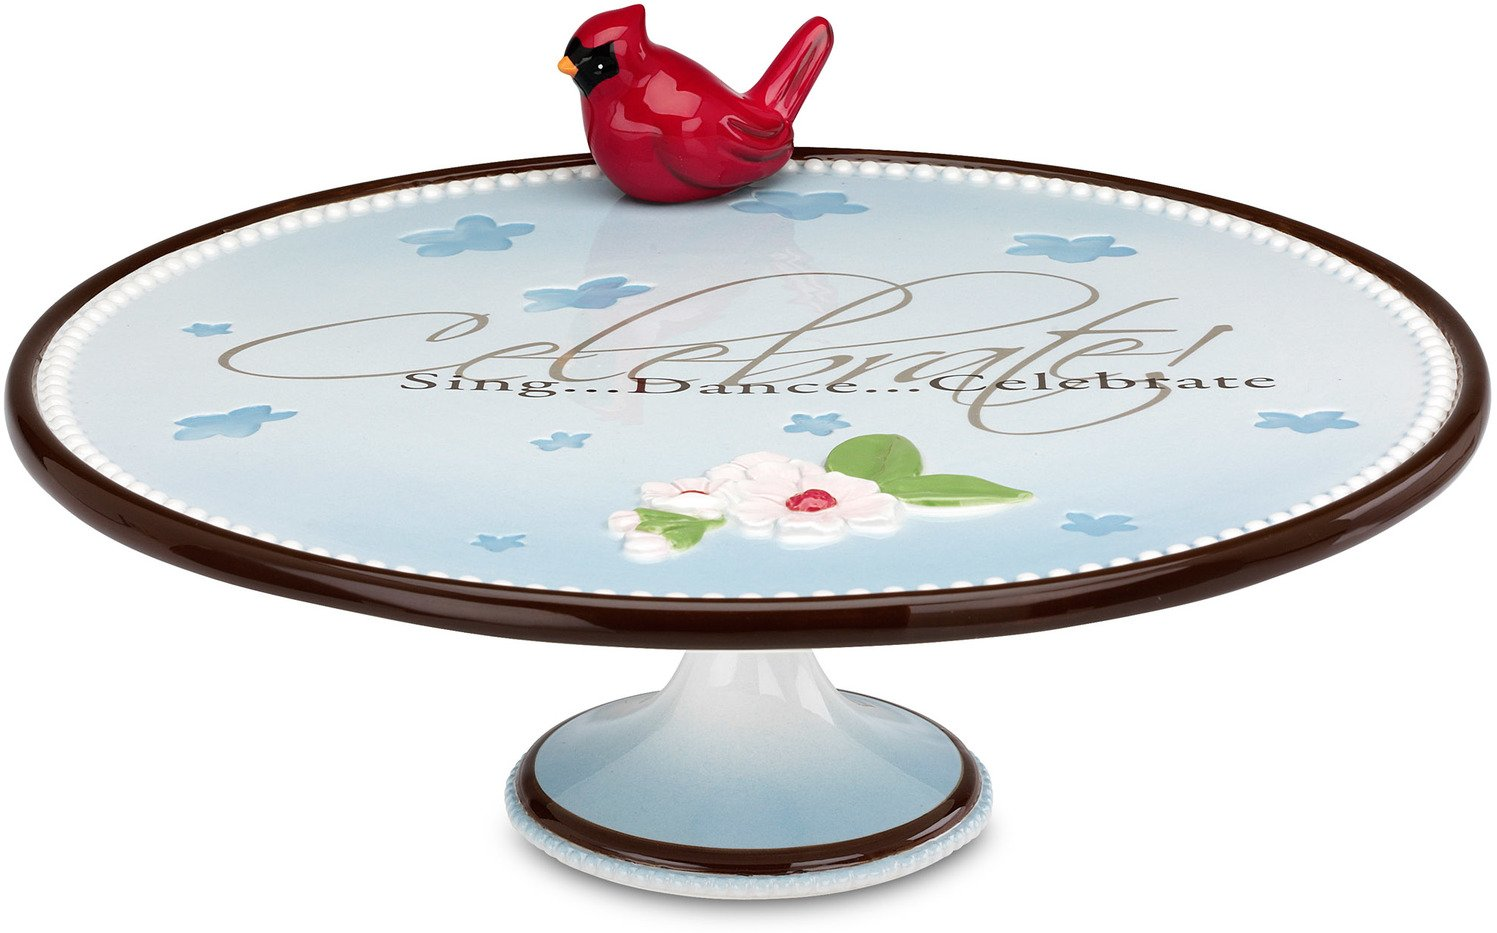 Peace, Love and Birds by Pavilion Celebrate Sentiment Cake Stand with Magnet Cardinal Bird, 12 by 4-1/2-Inch